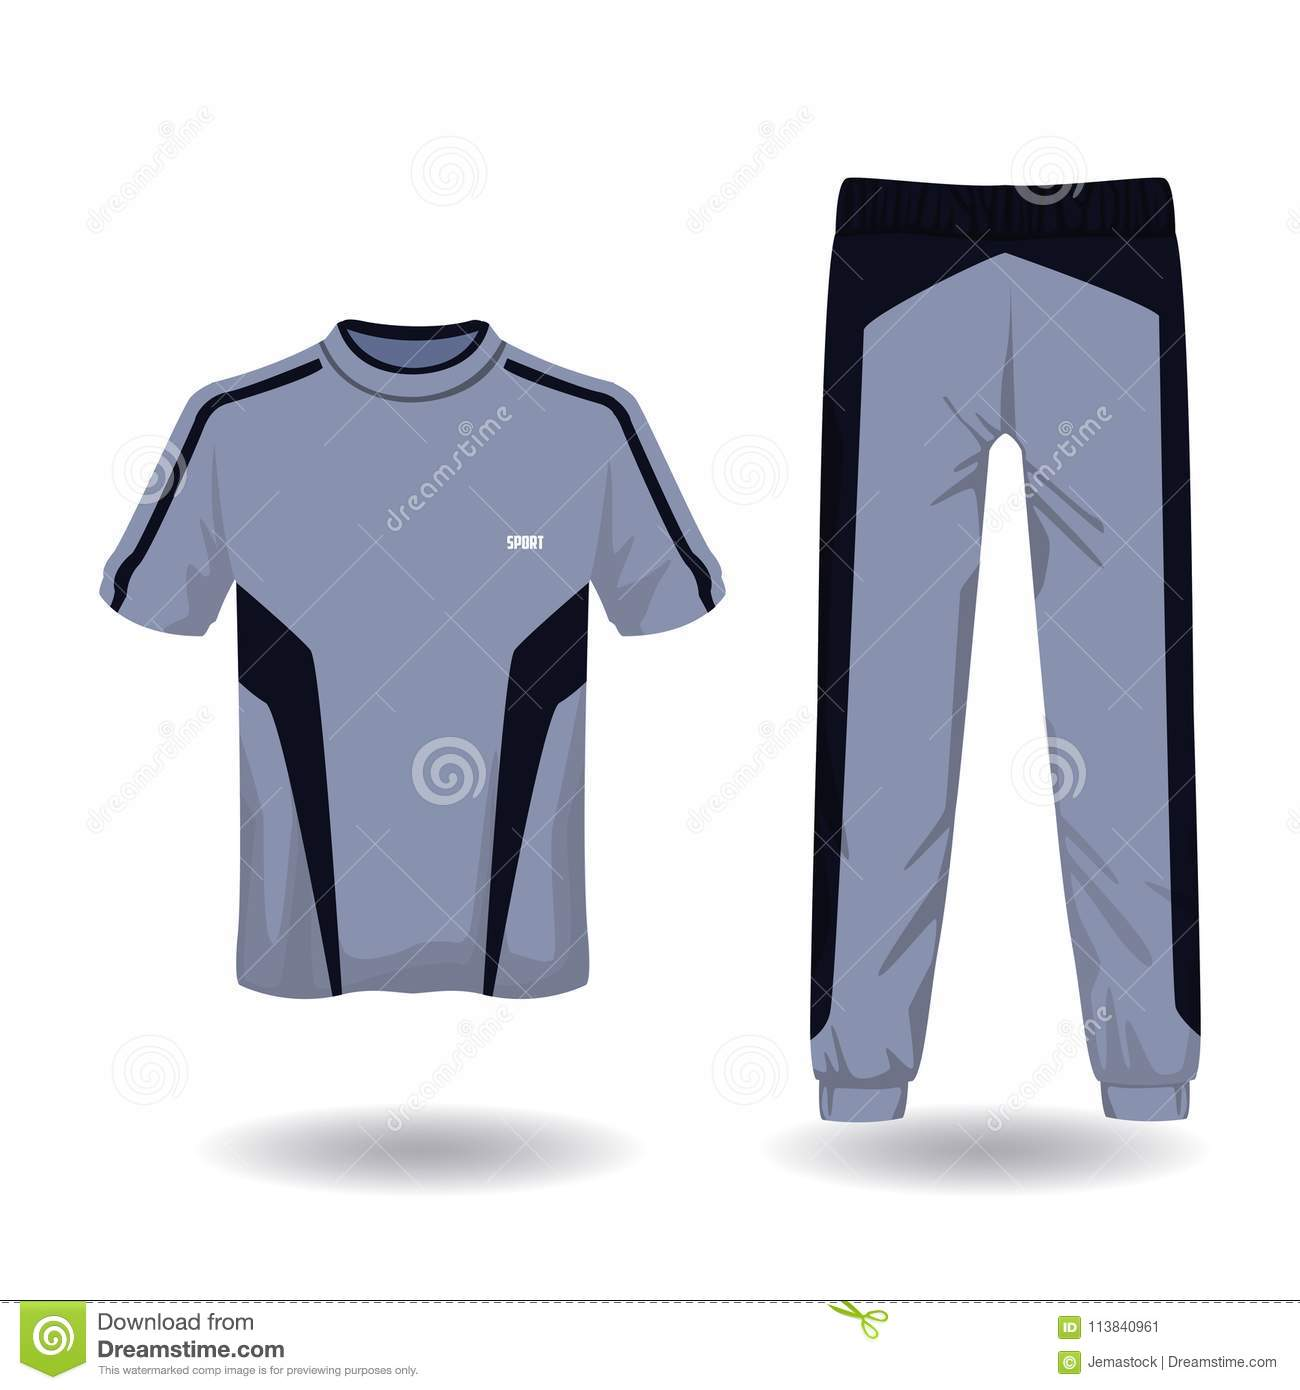 1a8ecb46 Tshirt and pants sport wear for male vector illustration graphic design